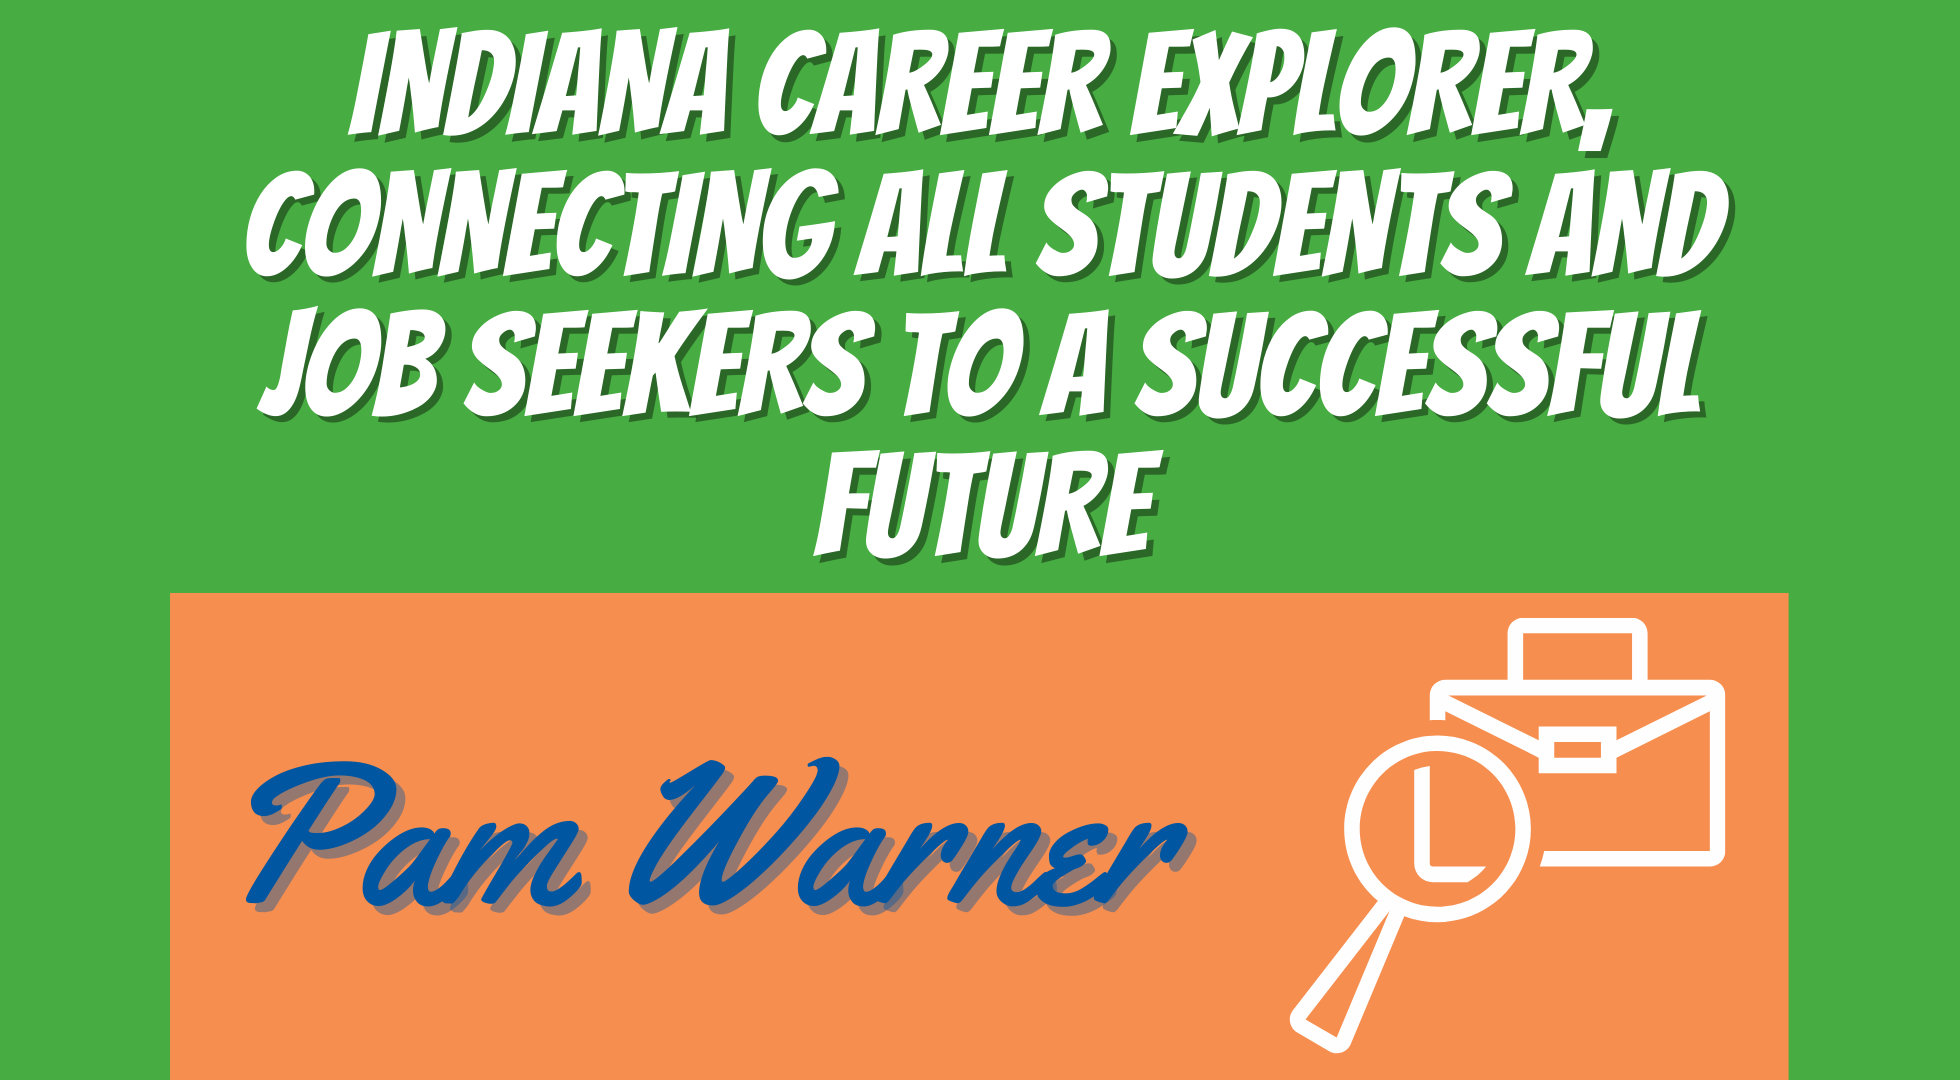 Indiana Career Explorer, Connecting All Students and Job Seekers to a Successful Future